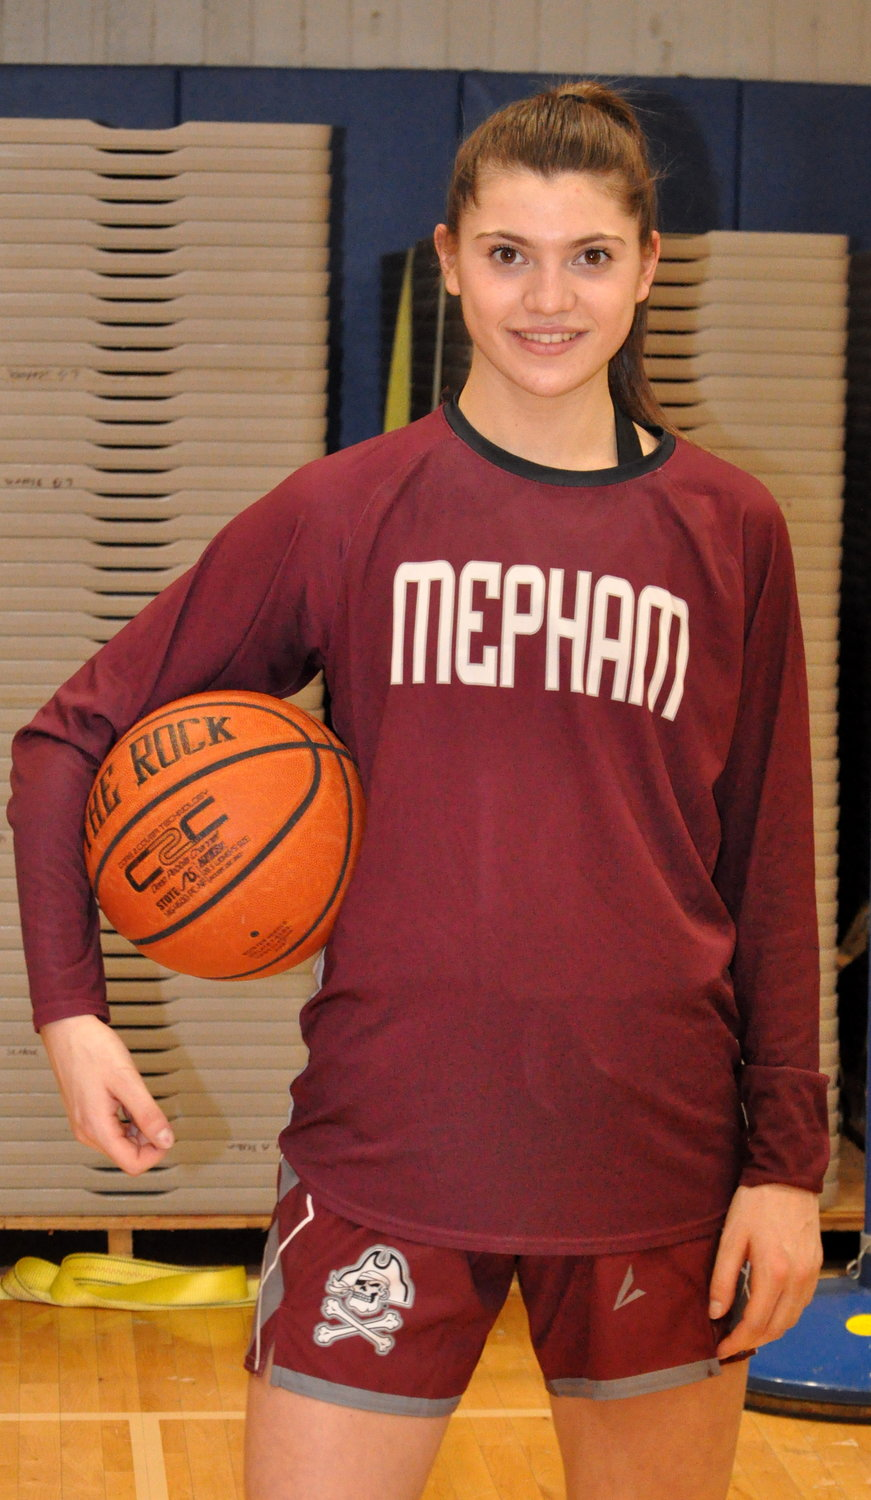 Senior Julia Rawlinson scored 11 points in Mepham High School's season-opening victory against Long Beach last Friday.